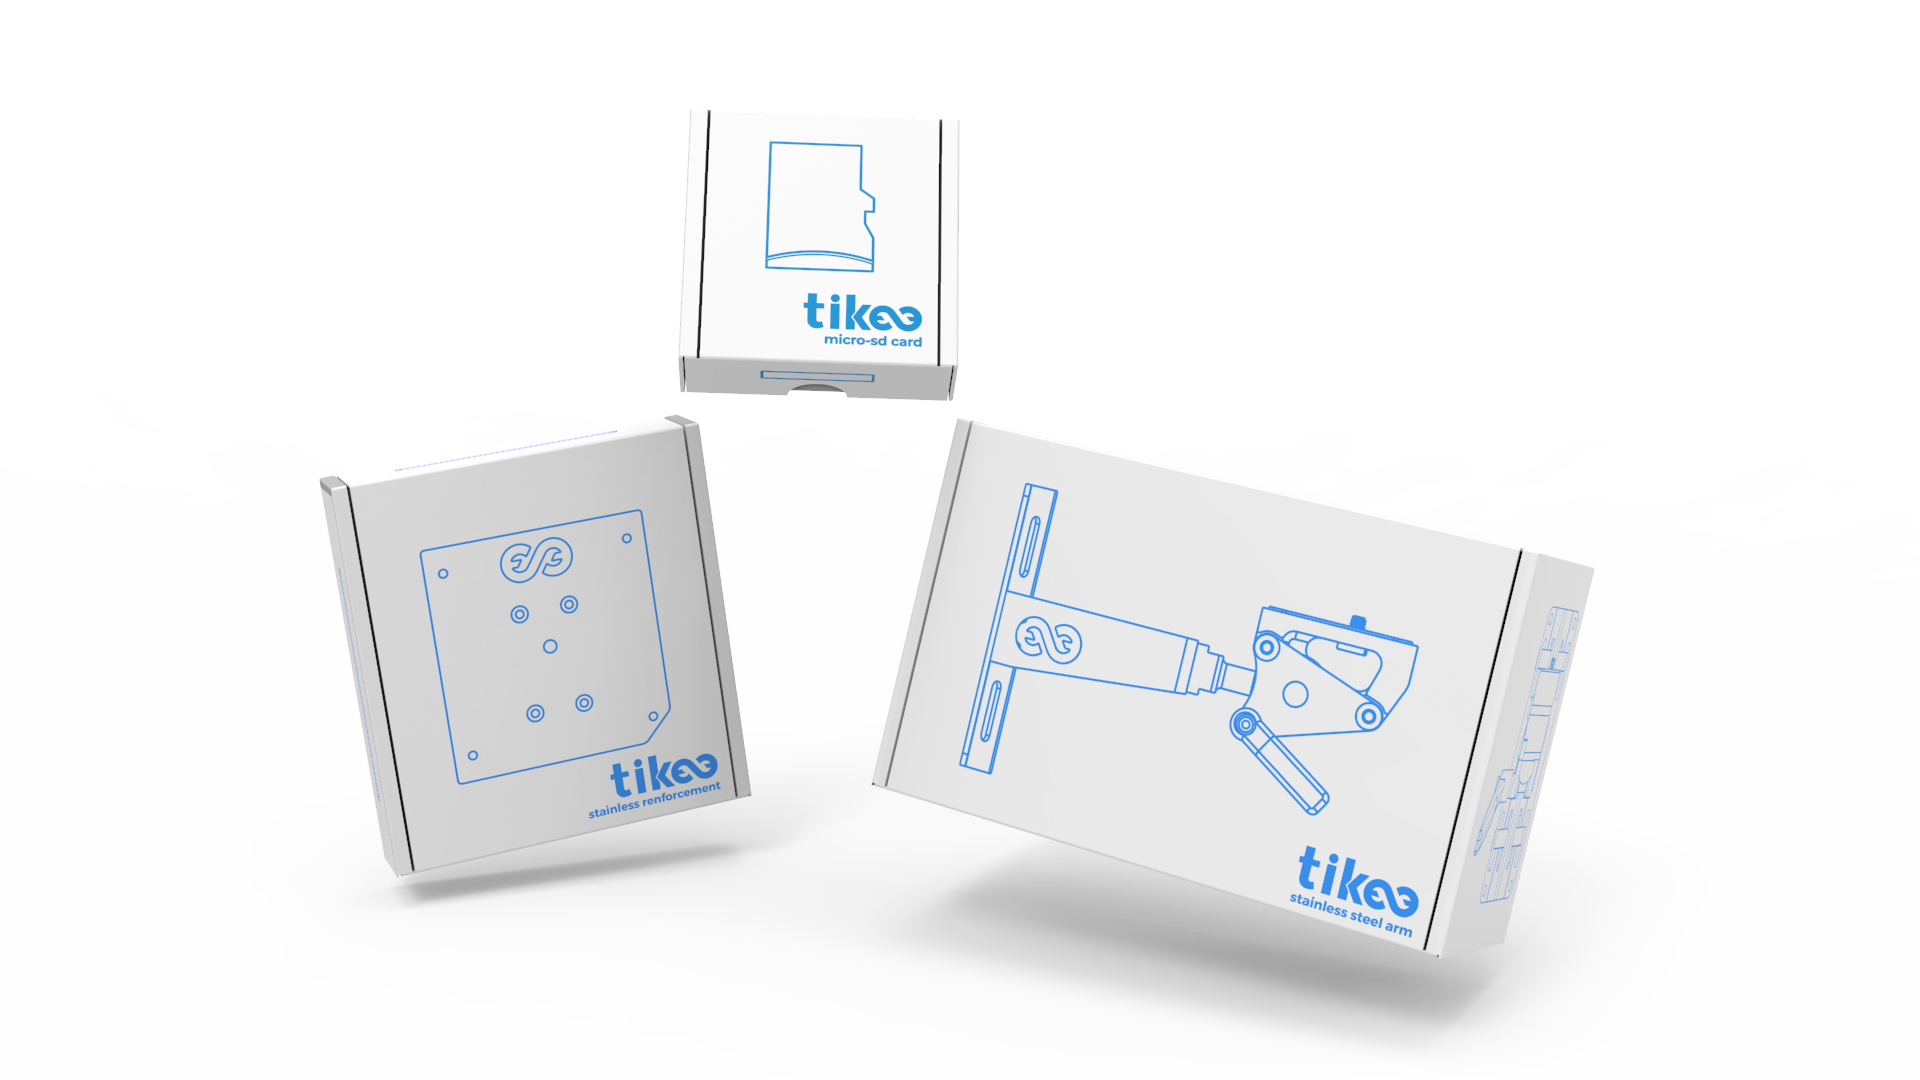 Tikee's accessories packaging